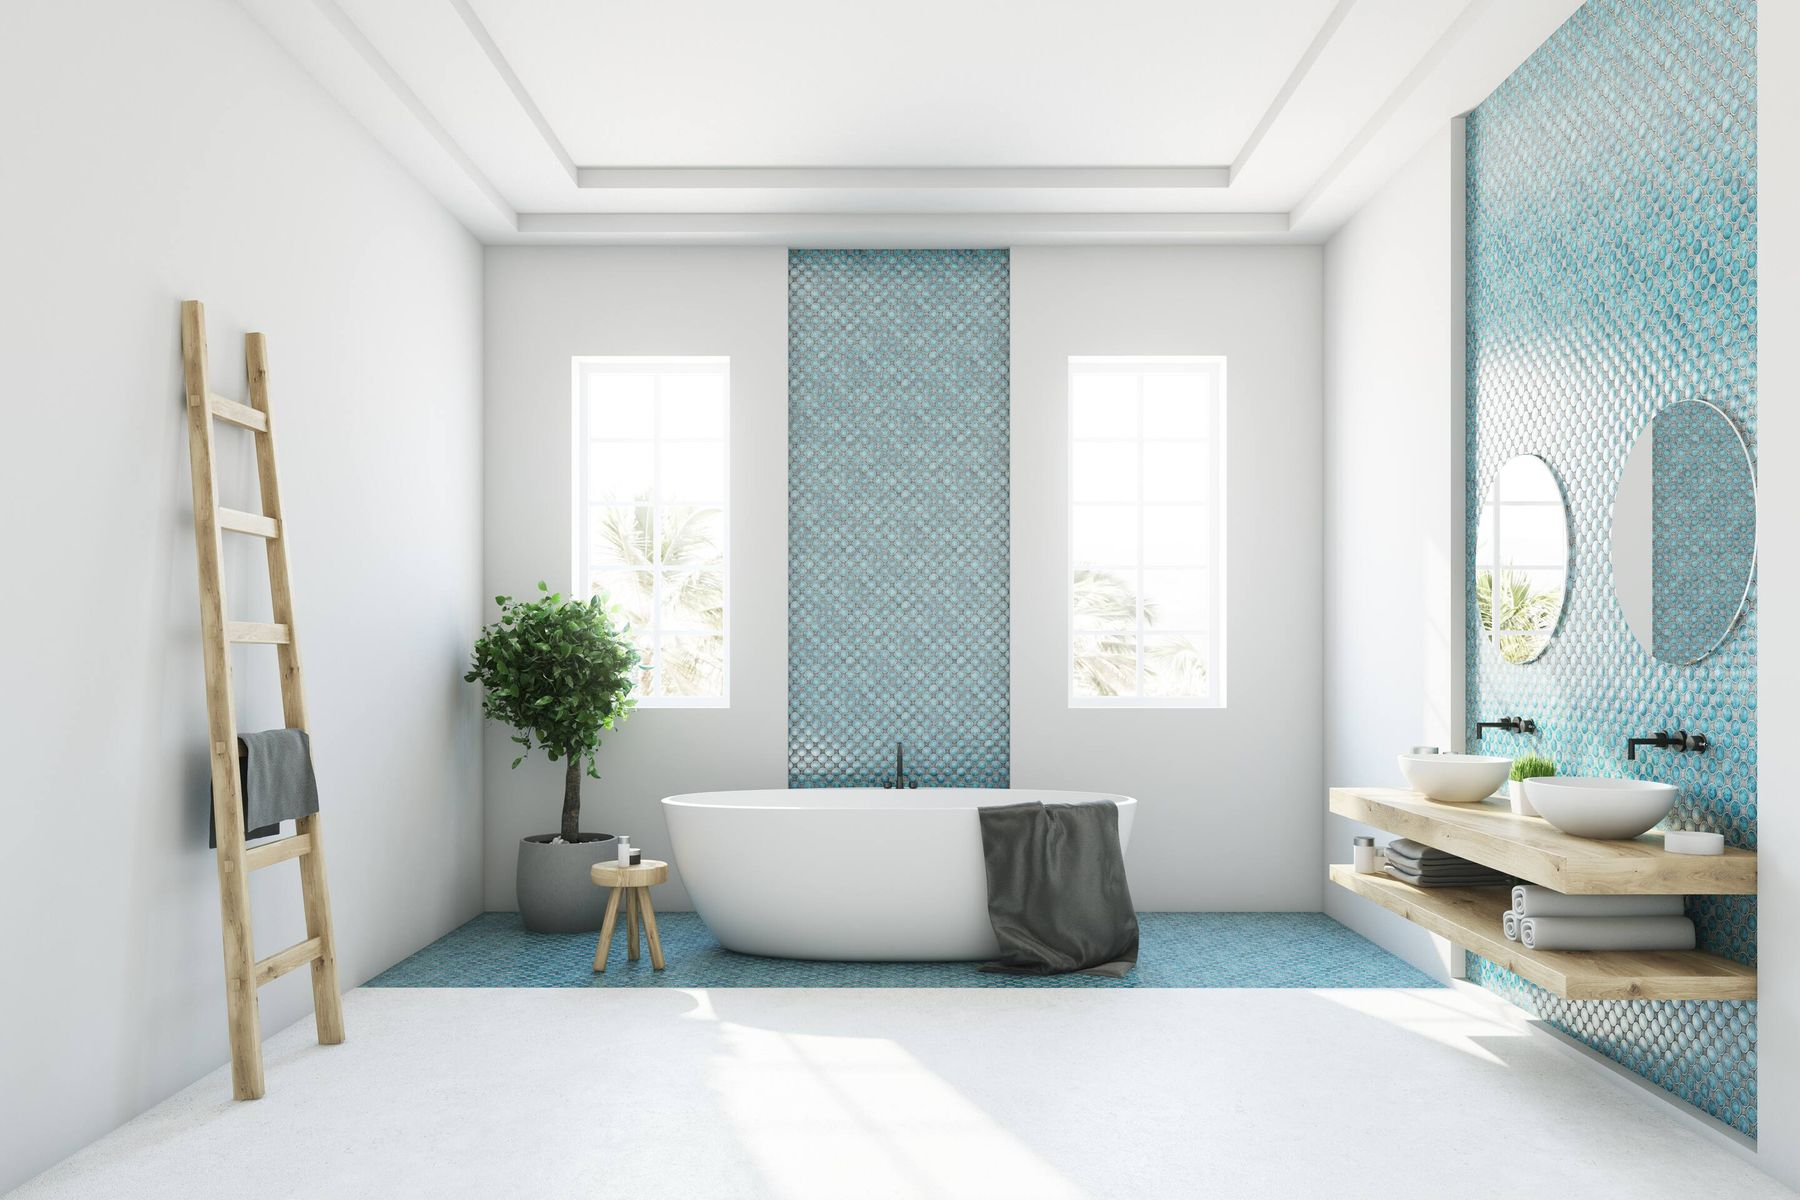 We've Got the Perfect Method for Shiny Bathroom Tiles!